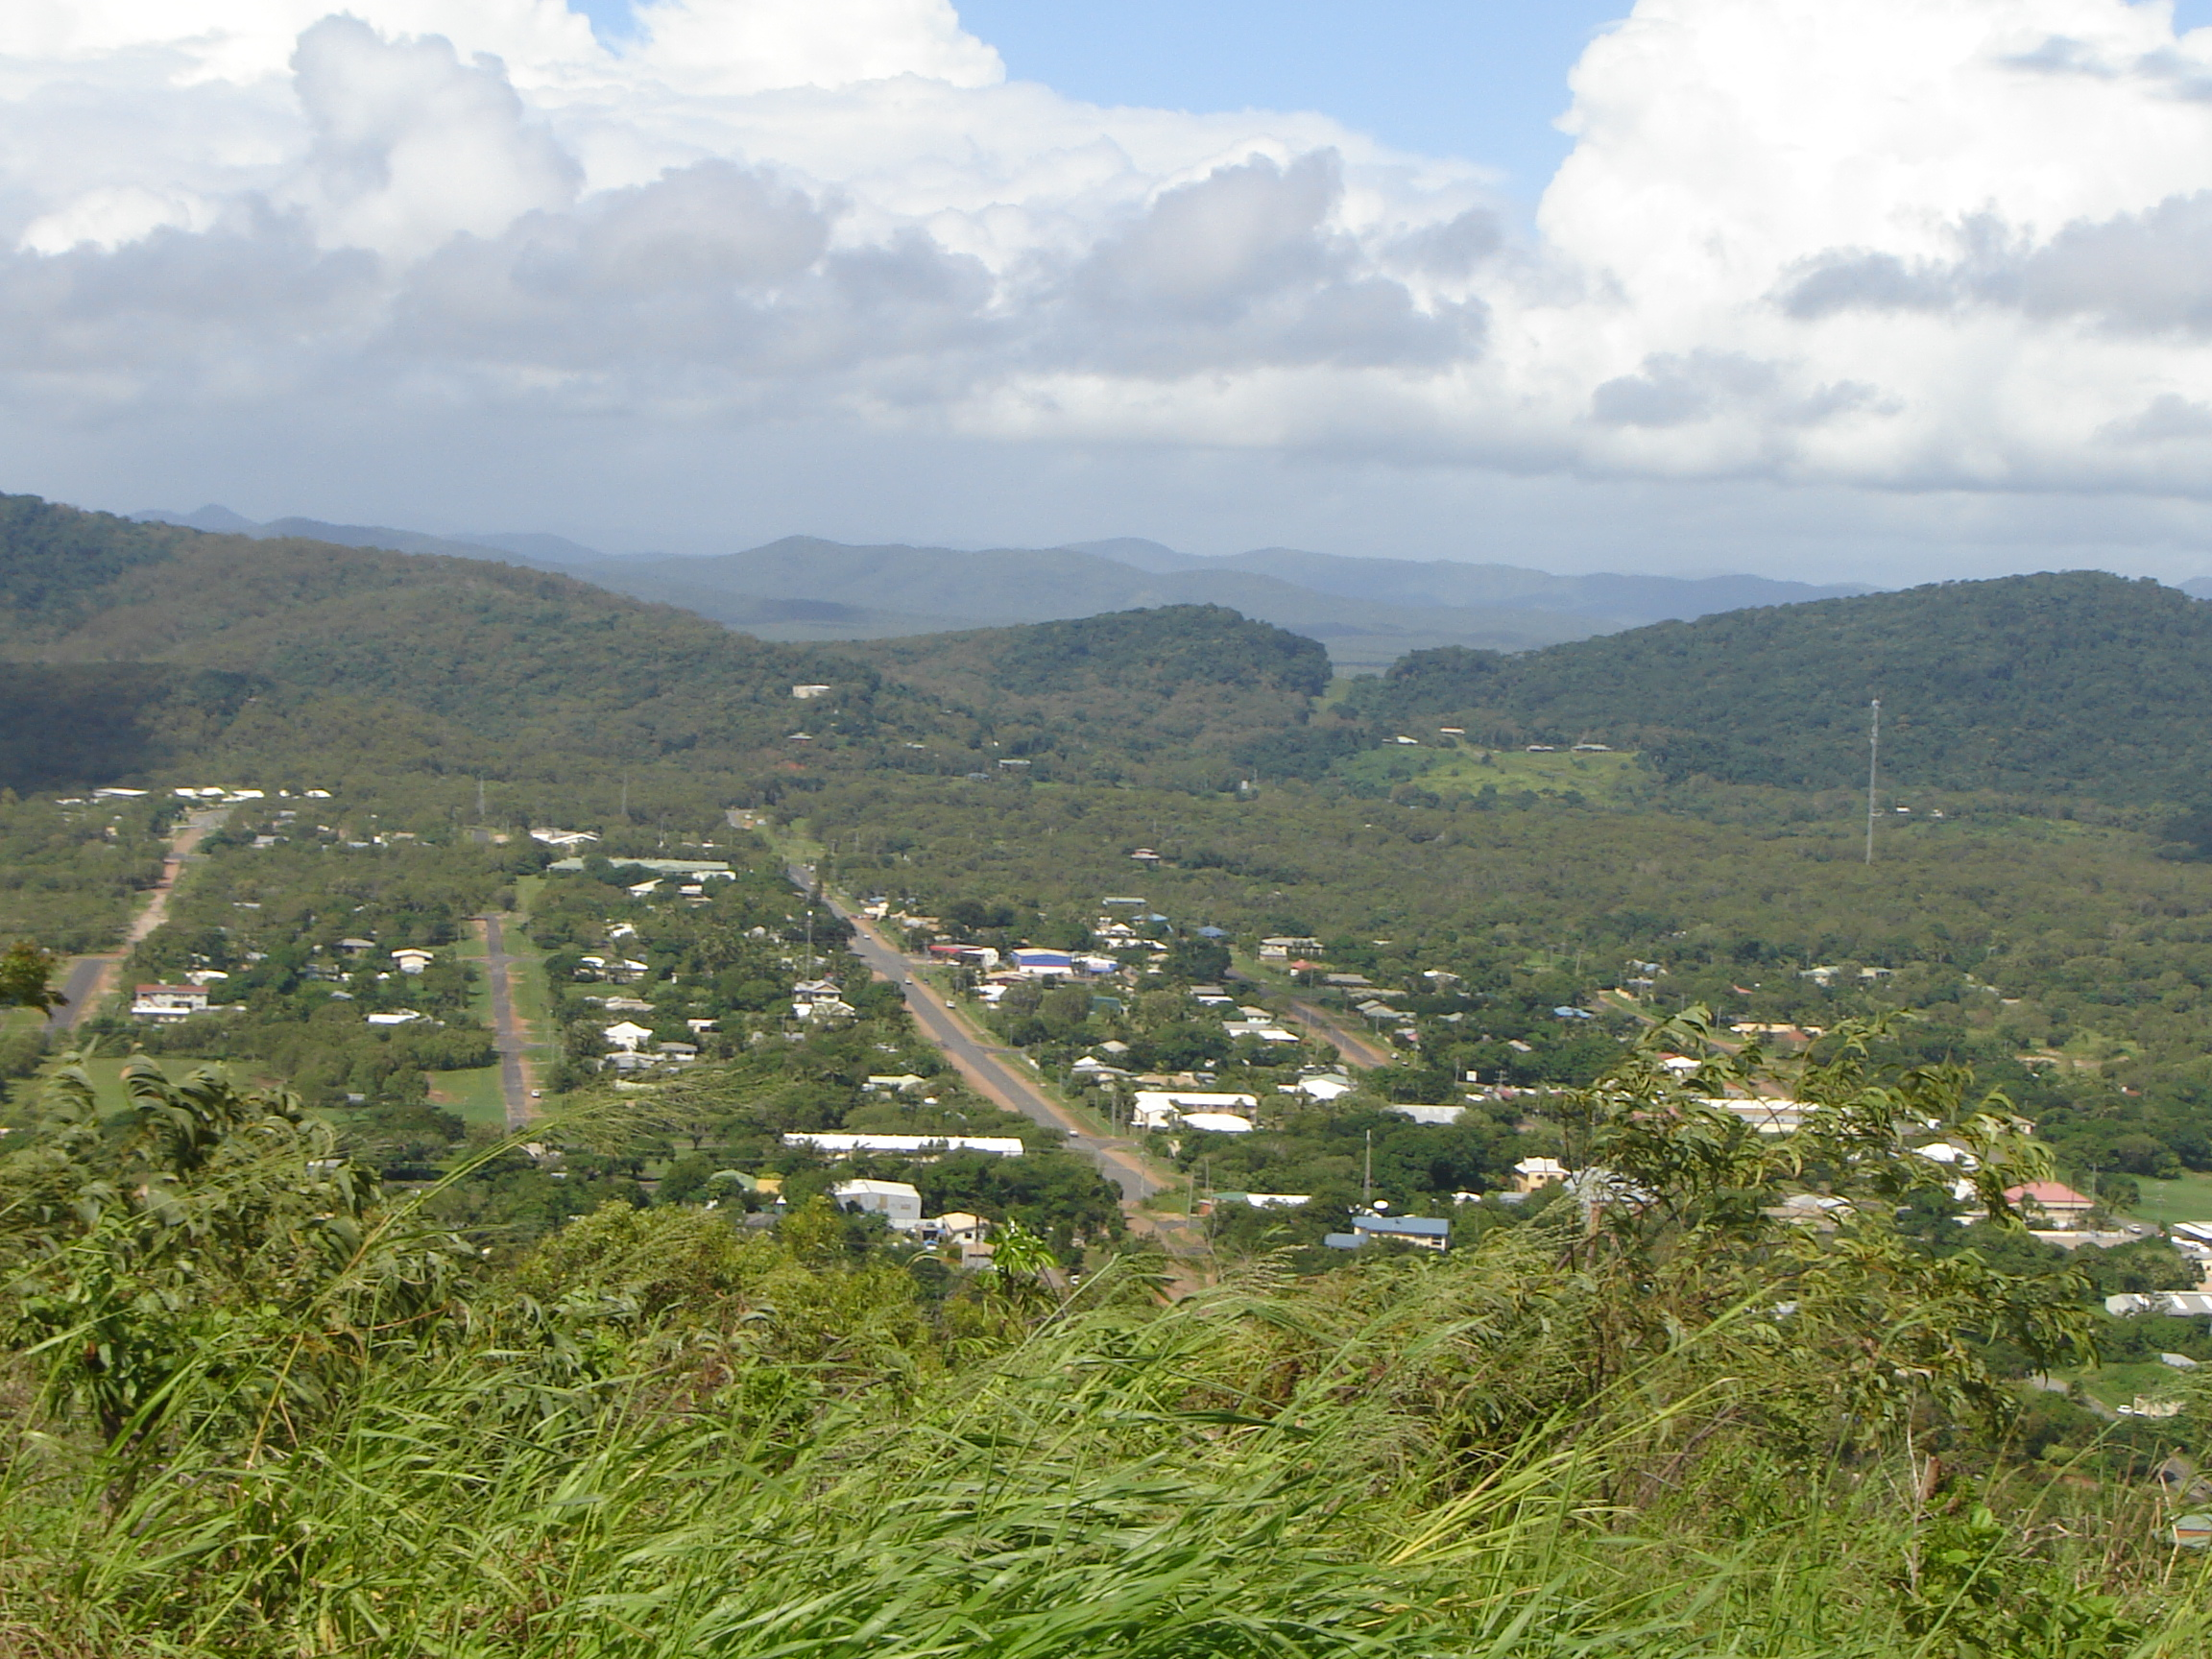 cooktown online dating Explore cooktown holidays and discover the best time and places to visit stroll the wide main street and see buildings dating back to the 1870s.